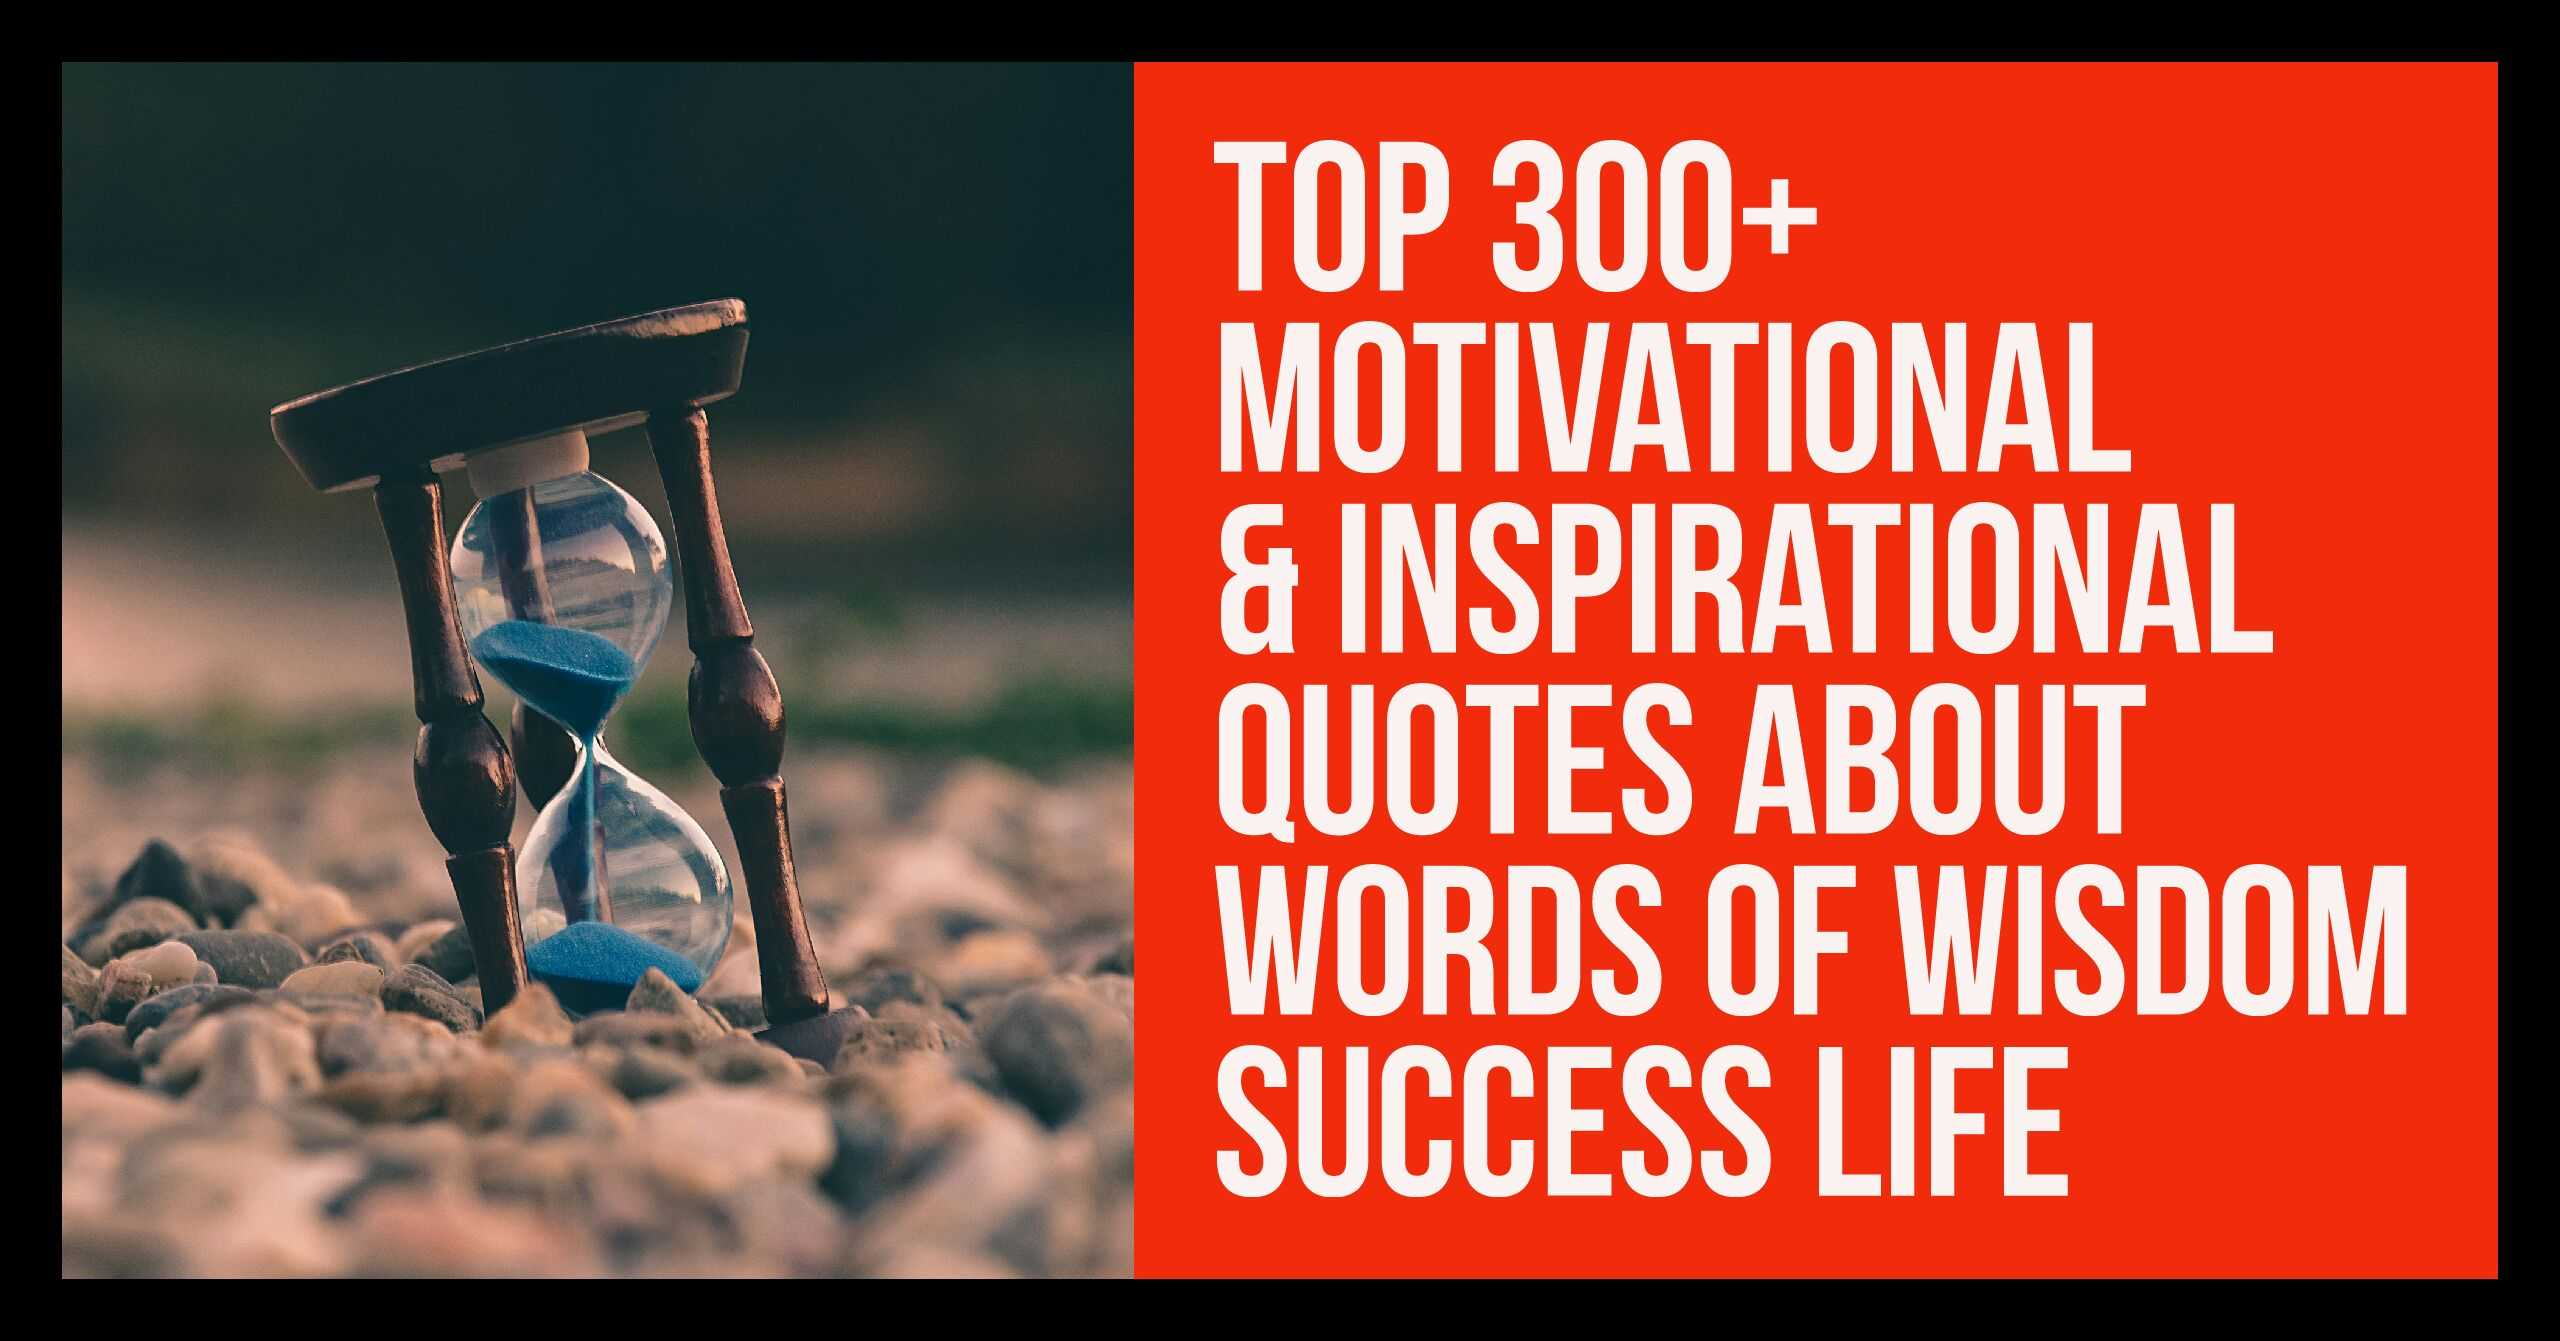 Motivational Inspirational Quotes About Words Of Wisdom